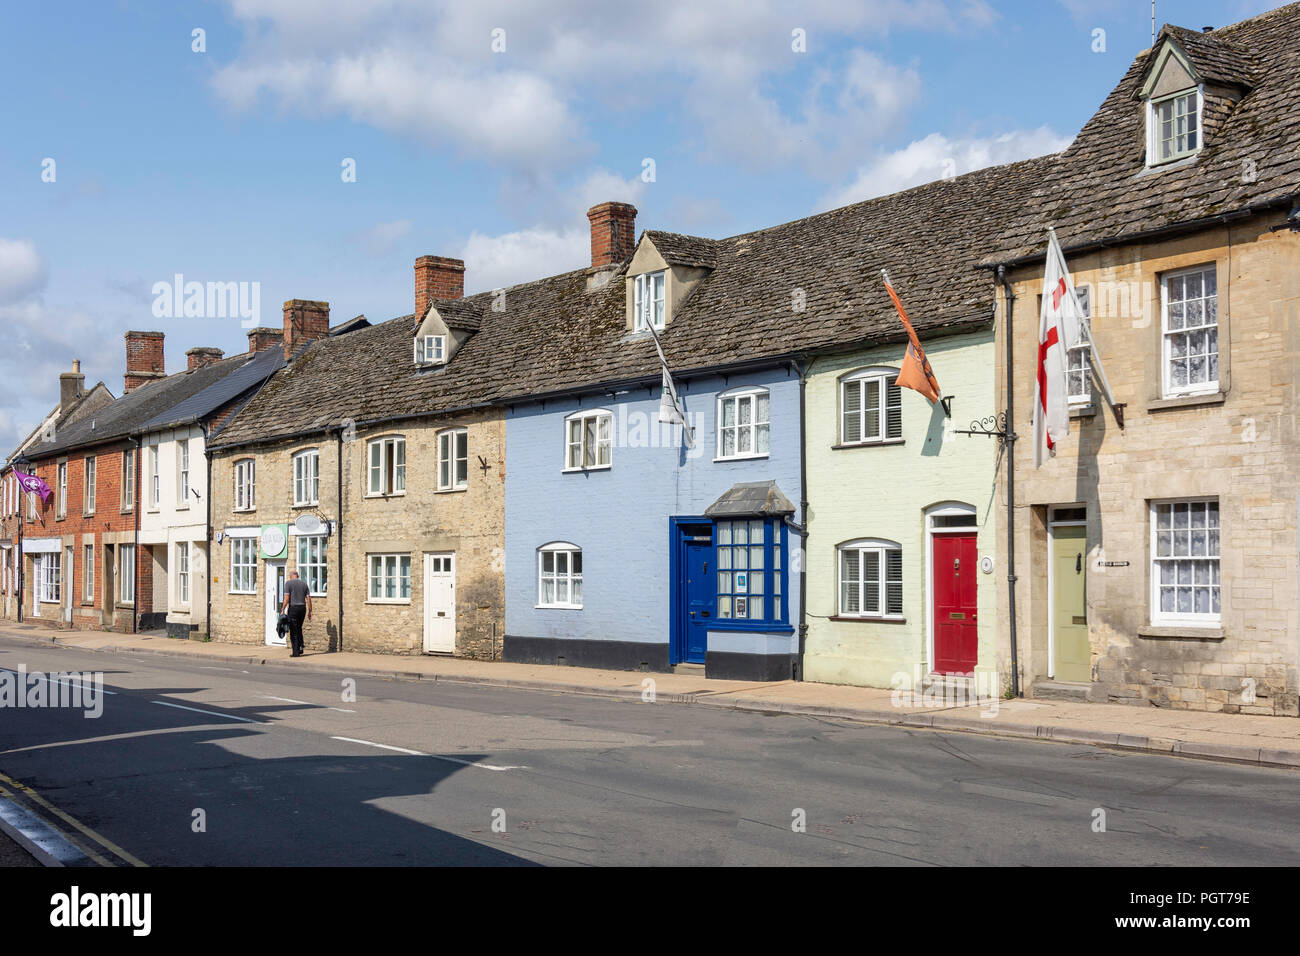 Period houses, High Street, Lechlade-on-Thames, Gloucestershire, England, United Kingdom - Stock Image